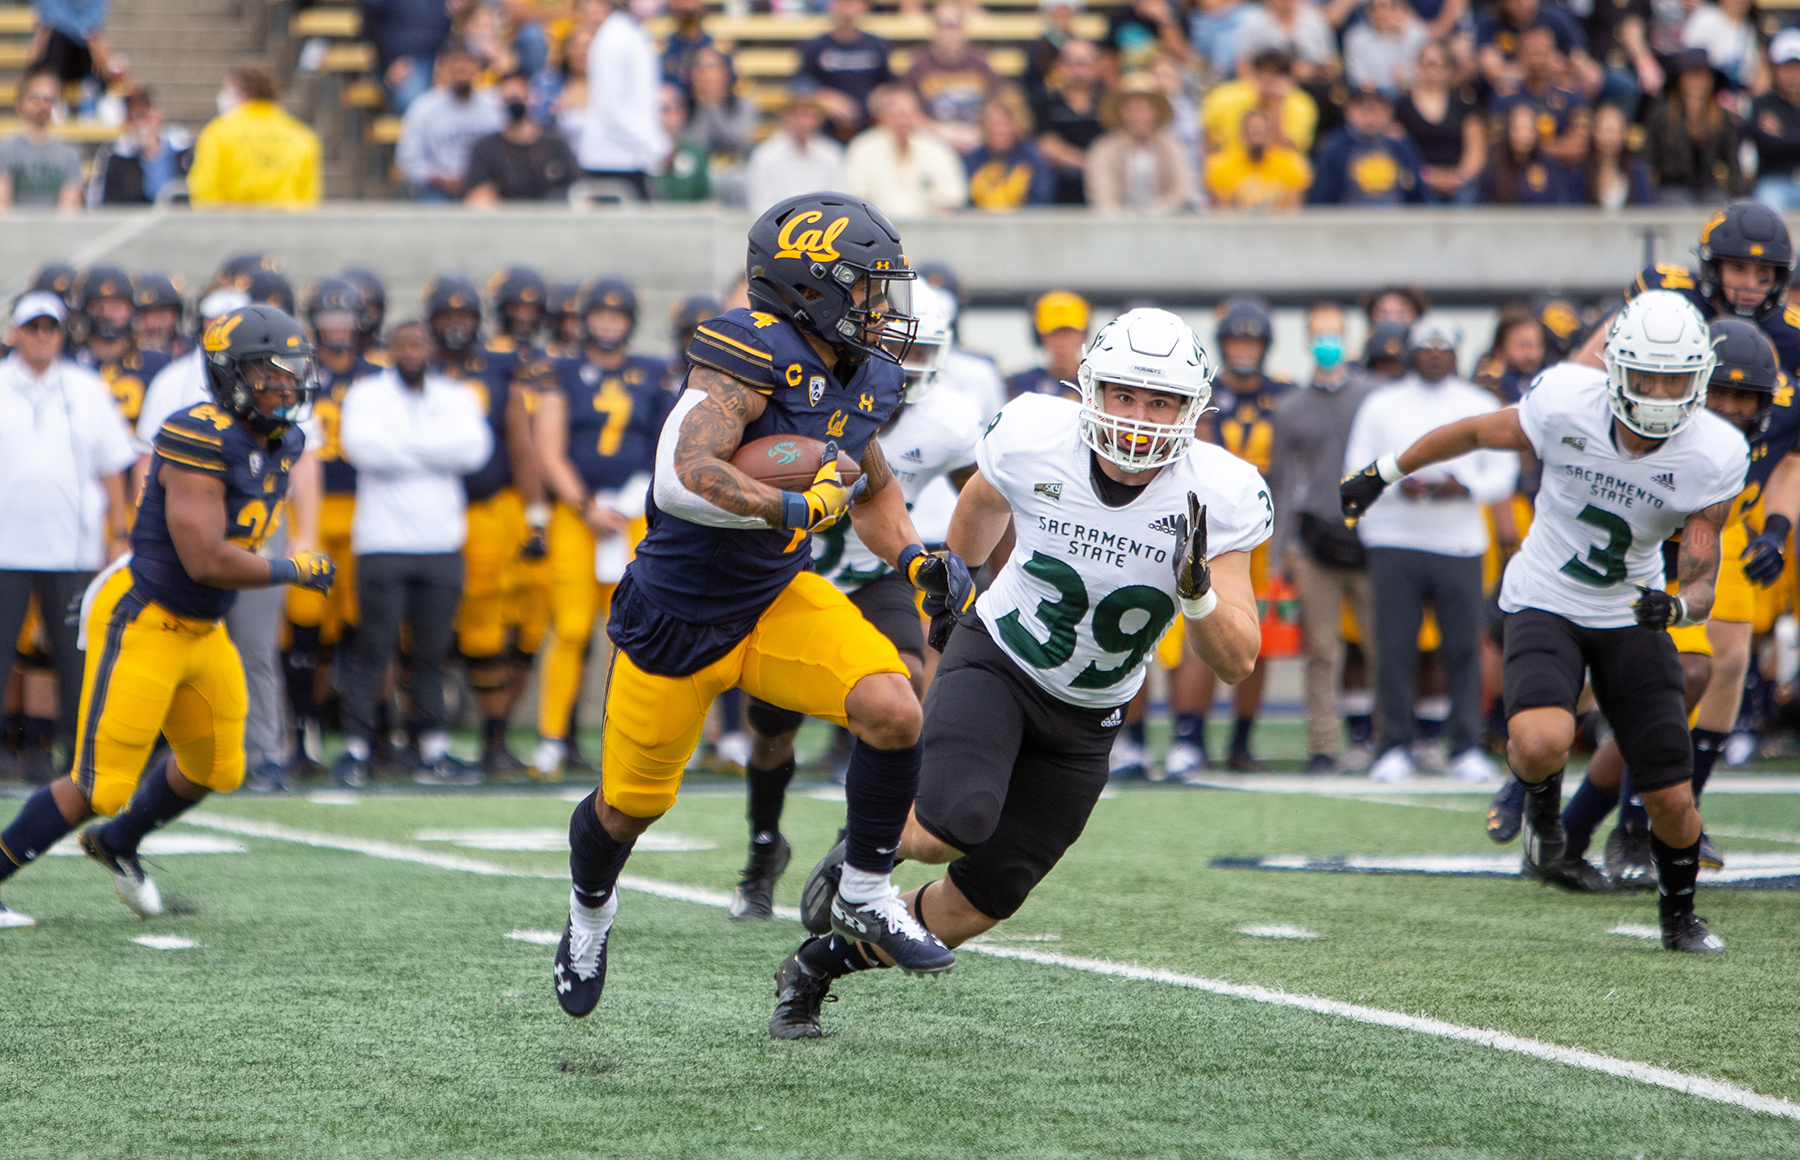 Cal offense sinks Sacramento State, secures season's 1st win 42-30